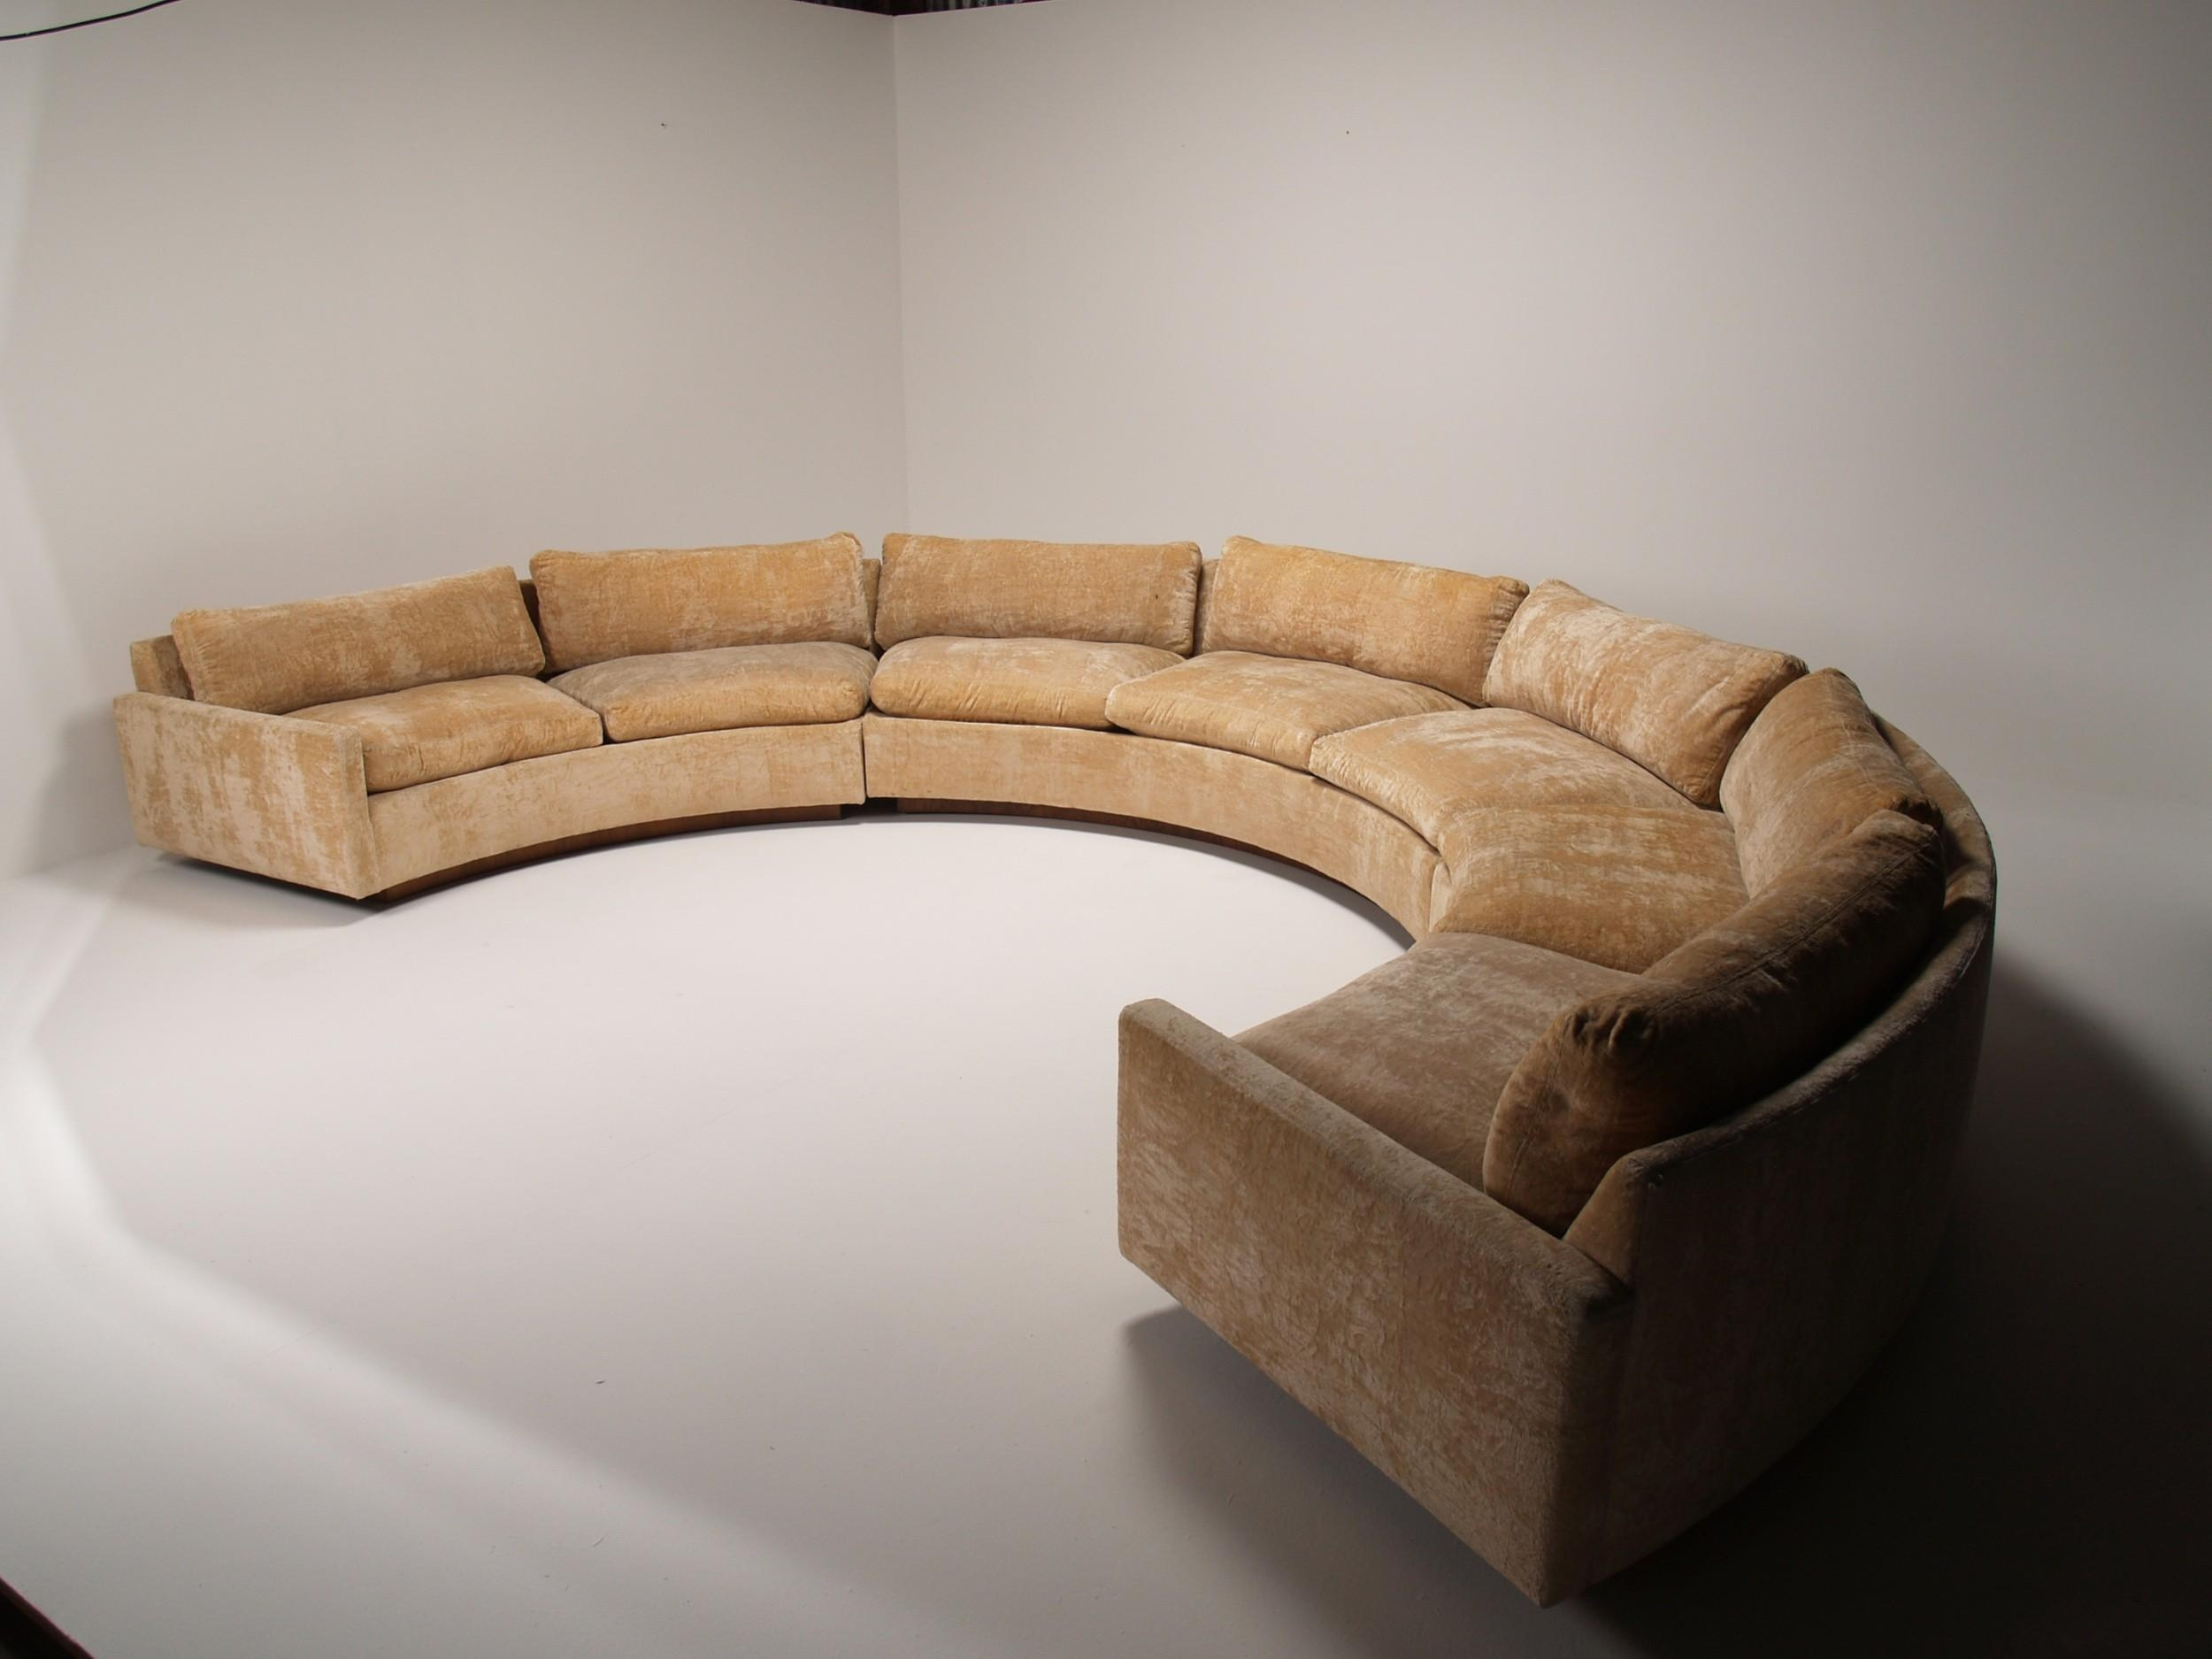 Furniture: Luxury Curved Sectional Sofa For Living Room Furniture For Rounded Sofa (View 9 of 20)